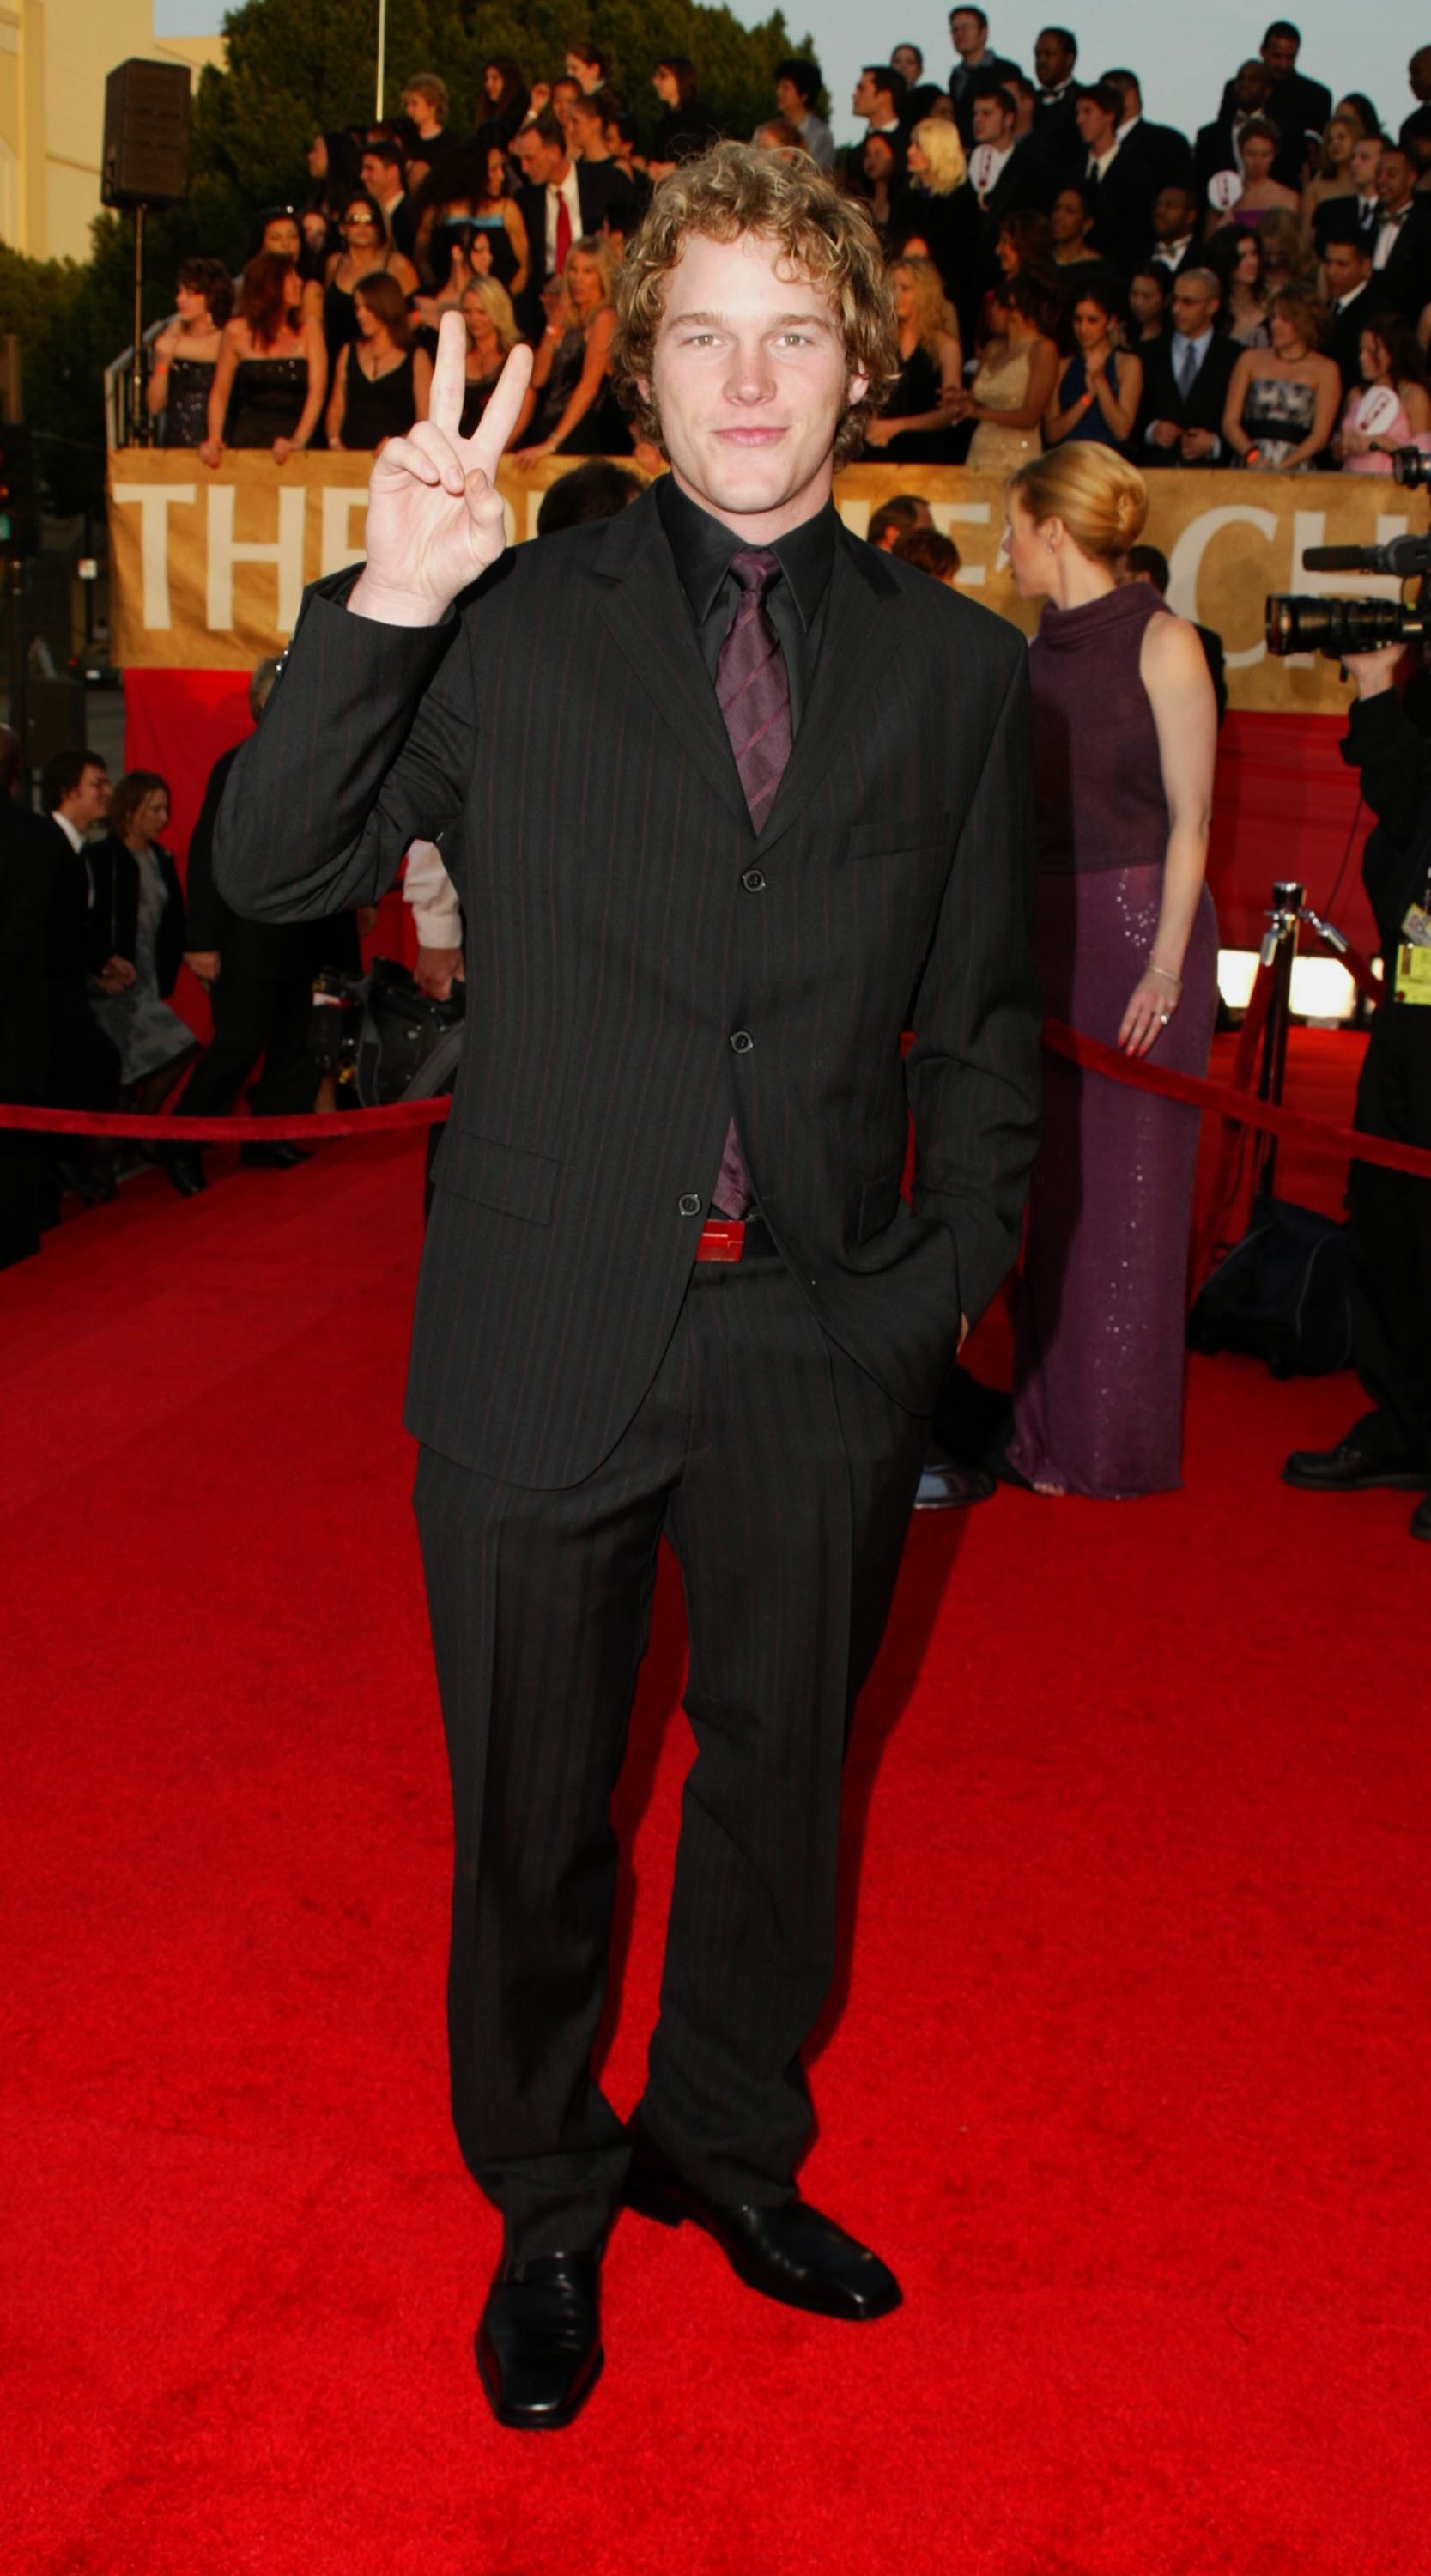 Chris Pratt attends the 29th Annual People's Choice Awards in Los Angeles on Jan. 12, 2003.